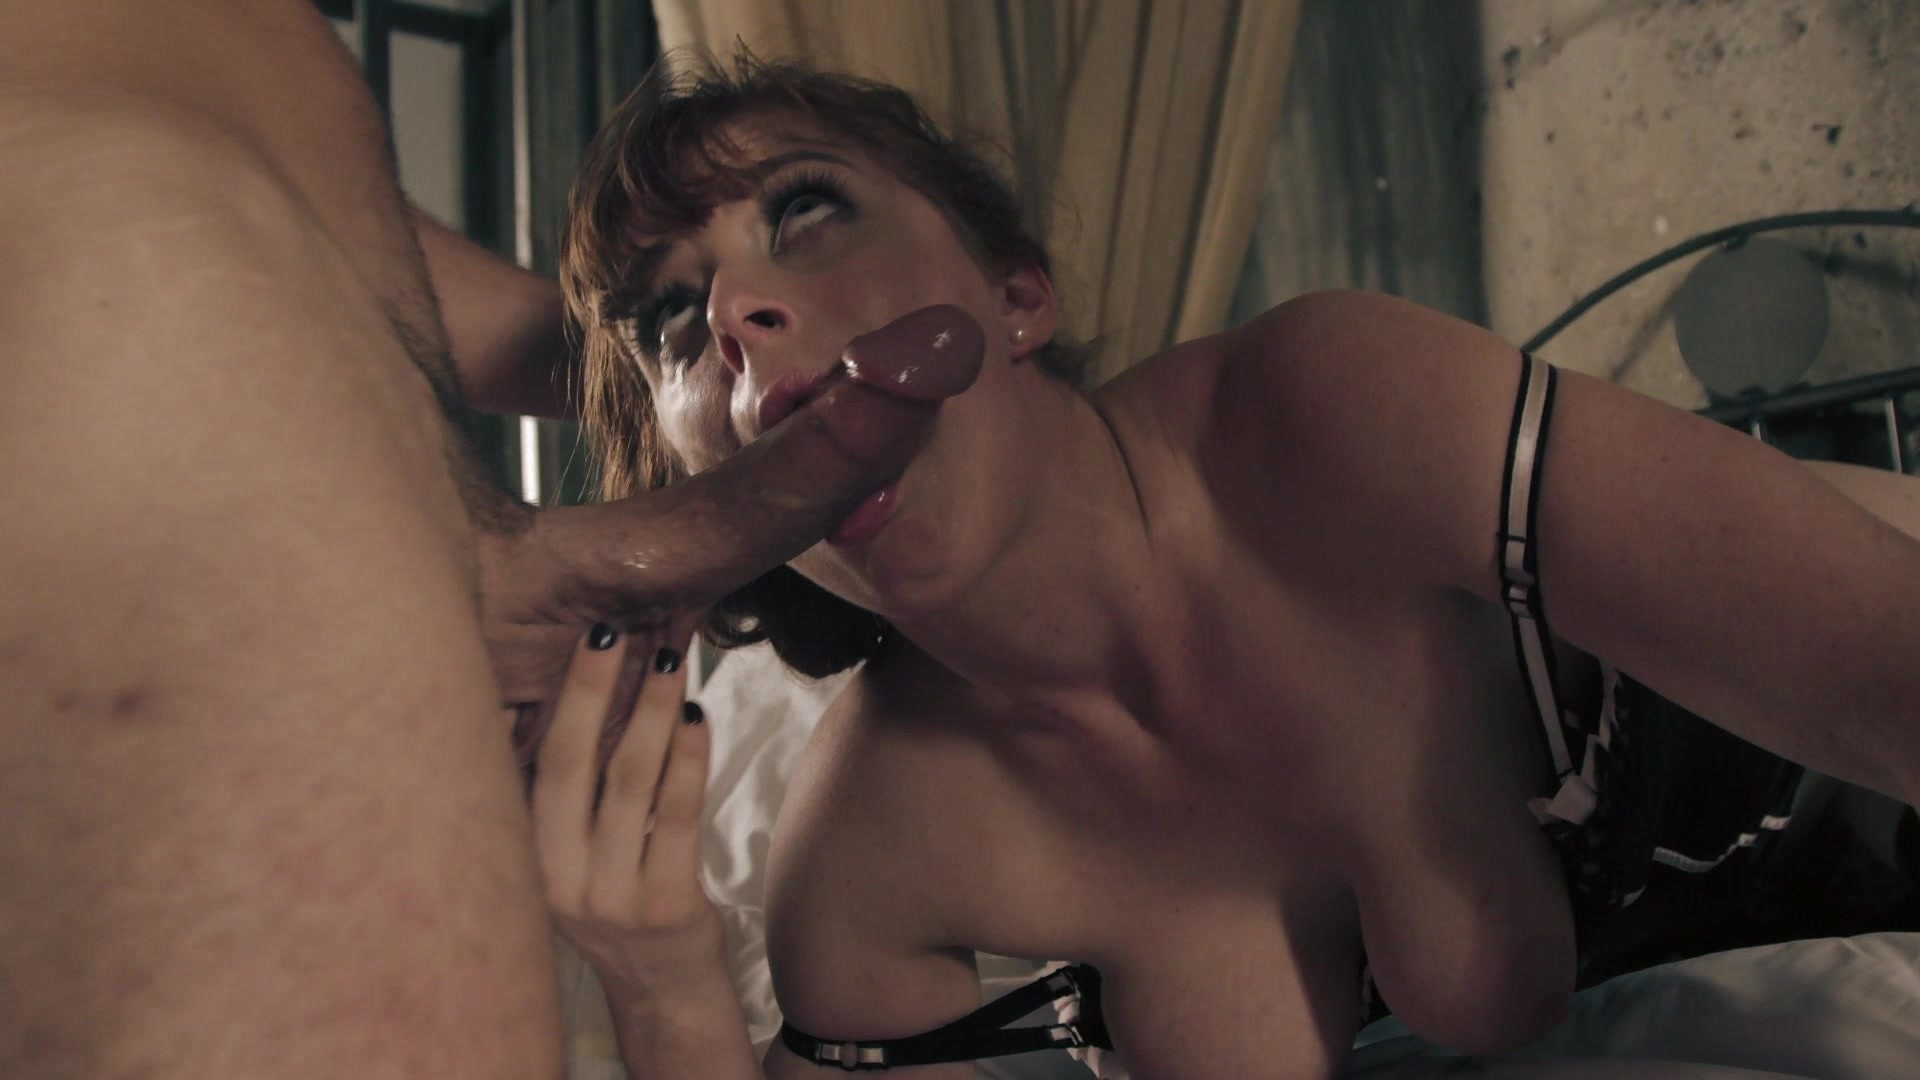 Scene with Ryan Driller and Penny Pax - image 20 out of 20